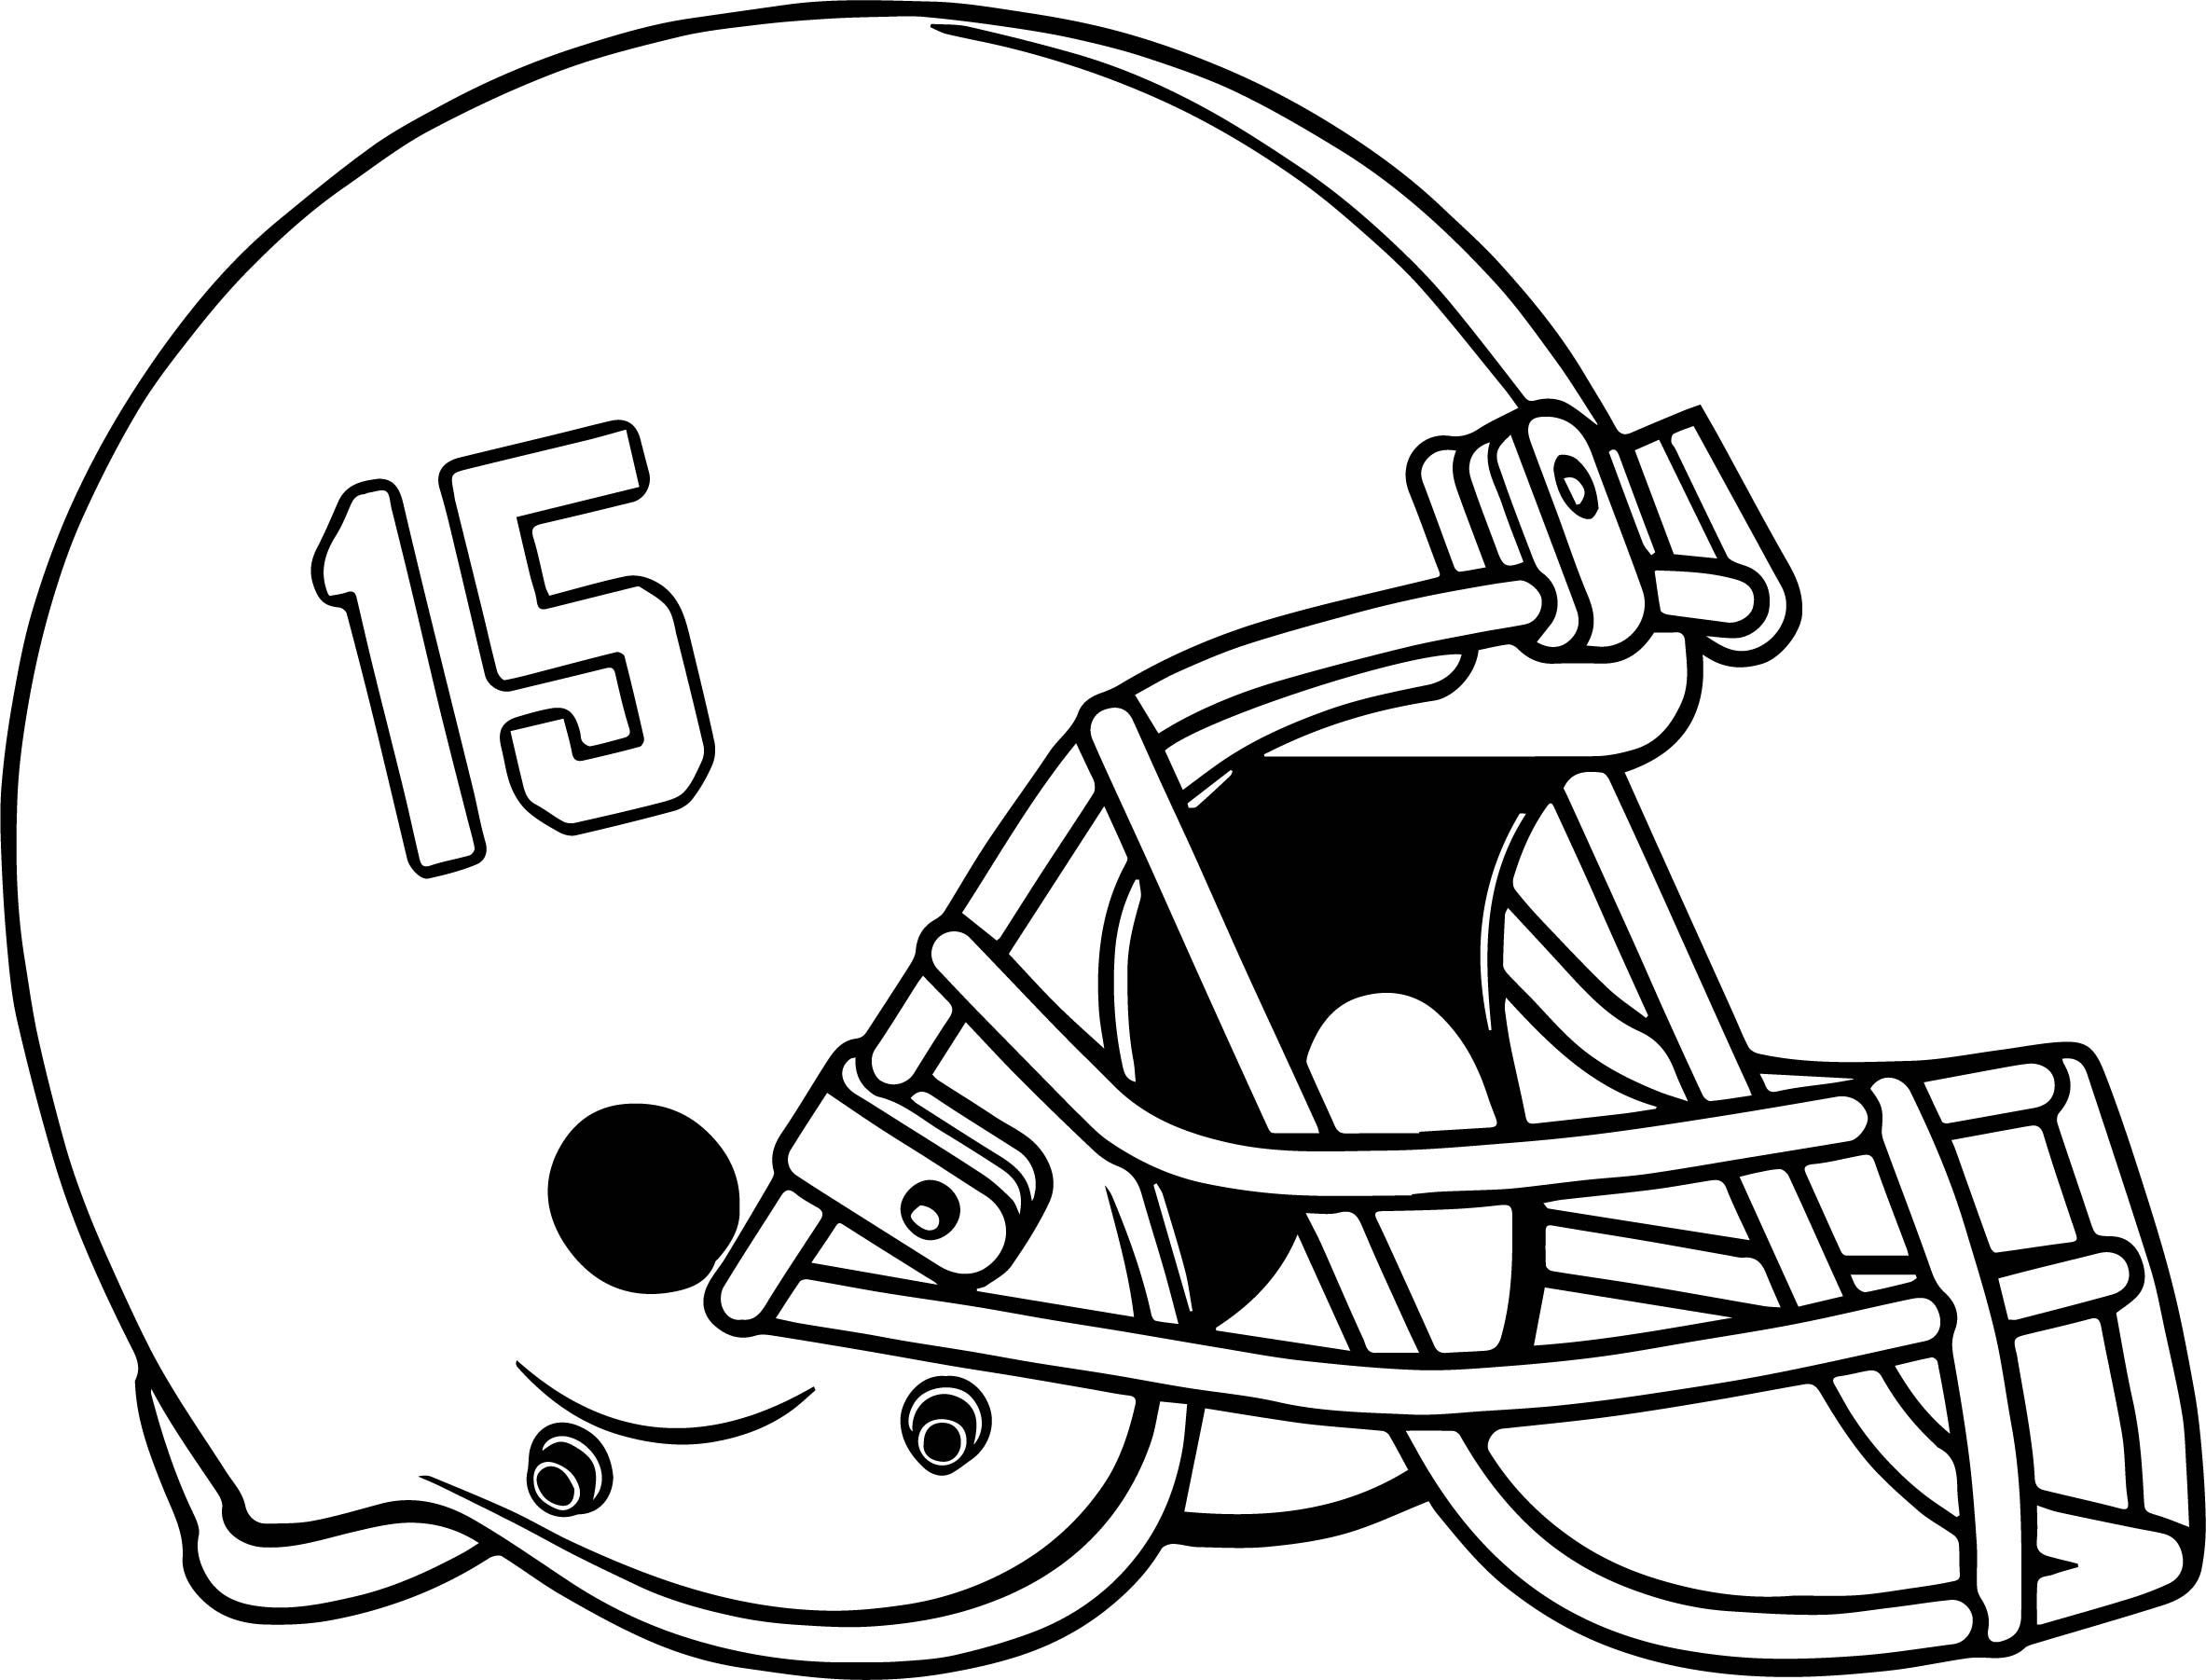 2366x1802 Best Of College Football Coloring Pages To Print Free Coloring